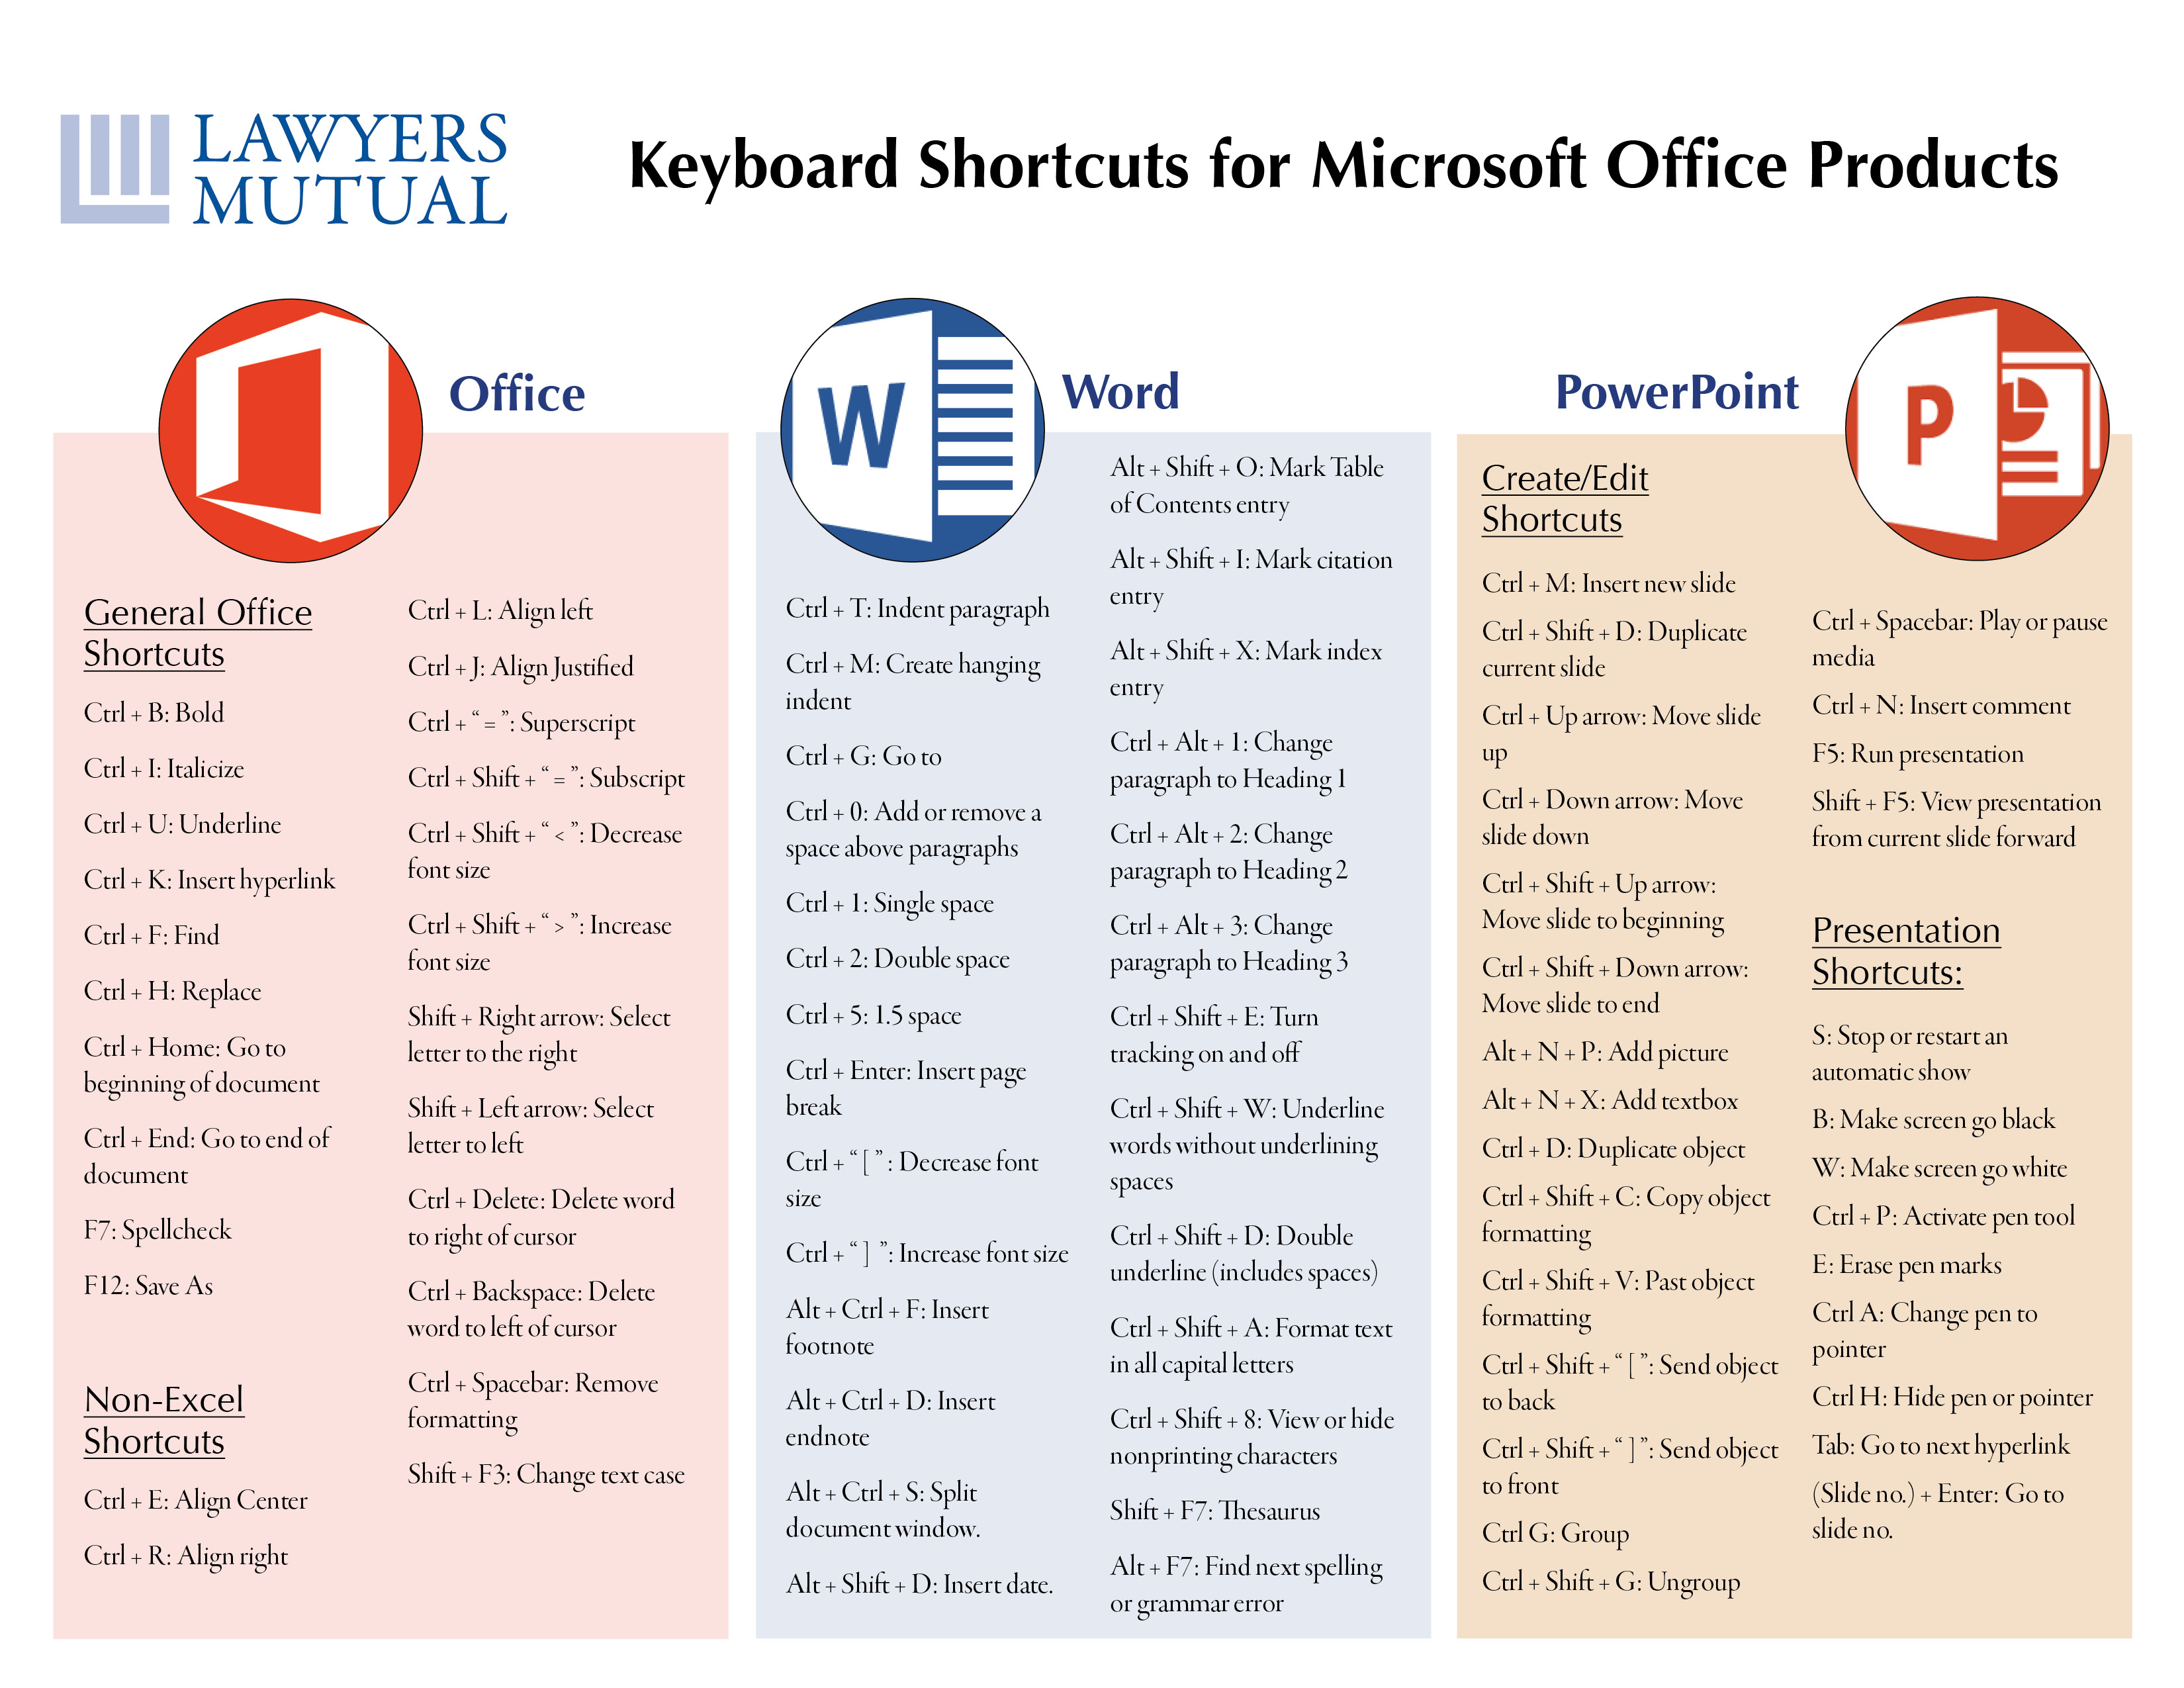 shortcuts for Office, Word, and PowerPoint